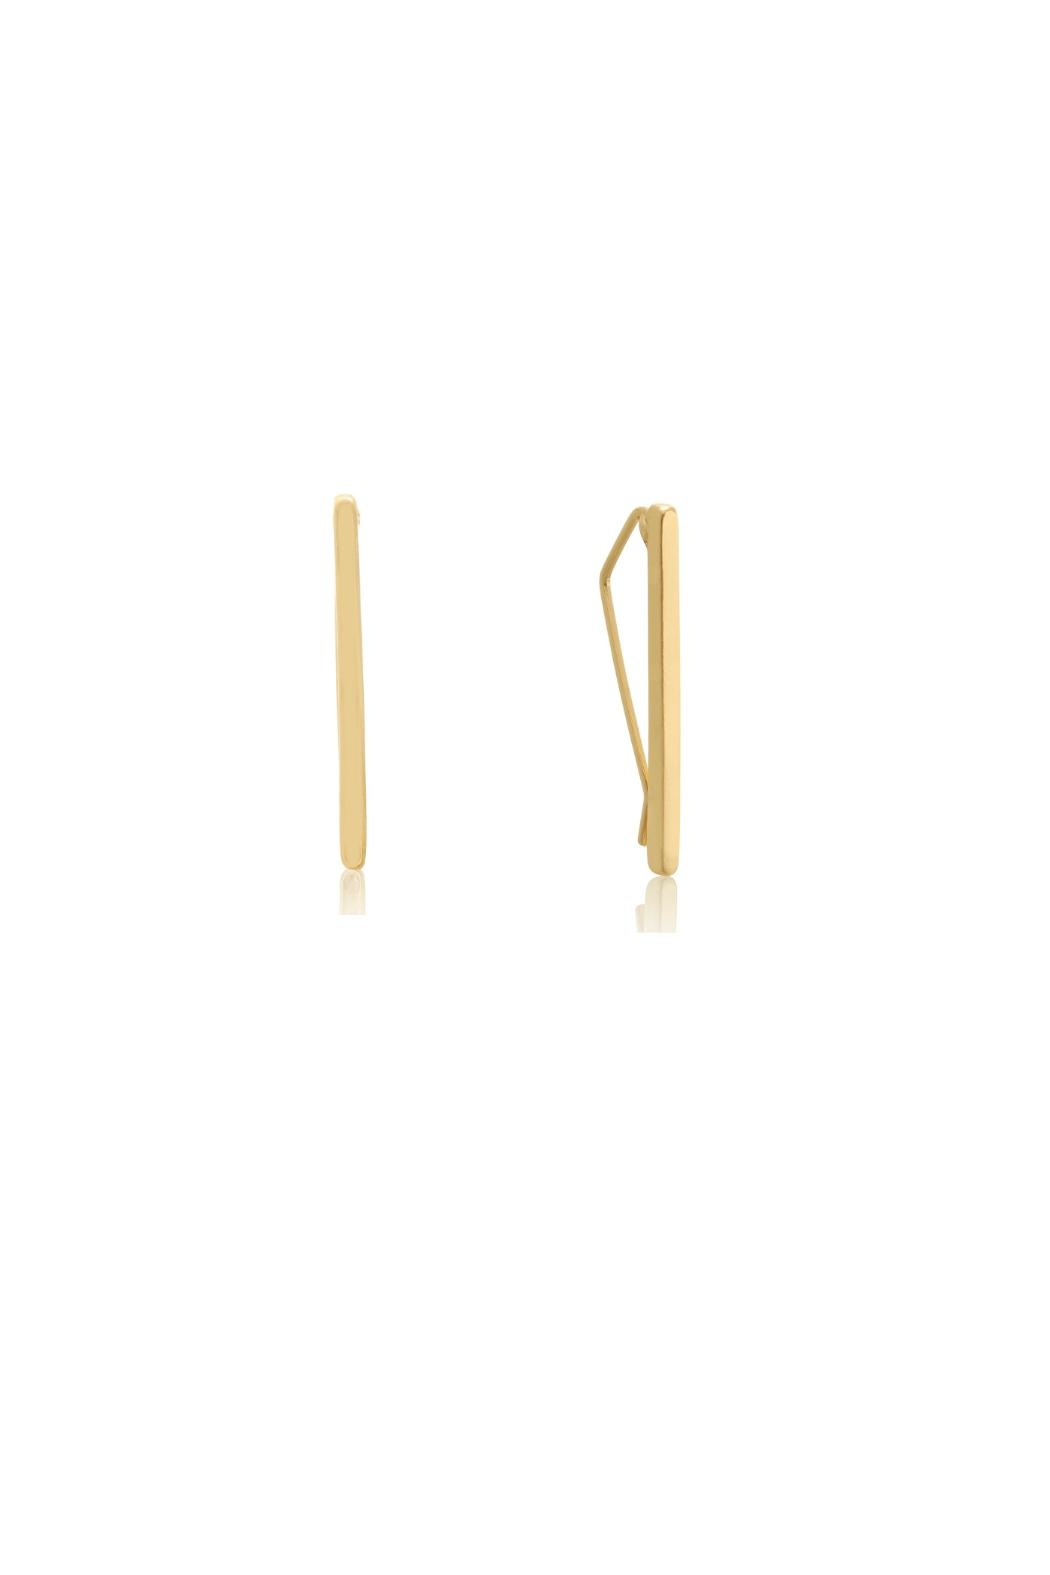 6th Borough Boutique Gold Ear Climbers - Main Image